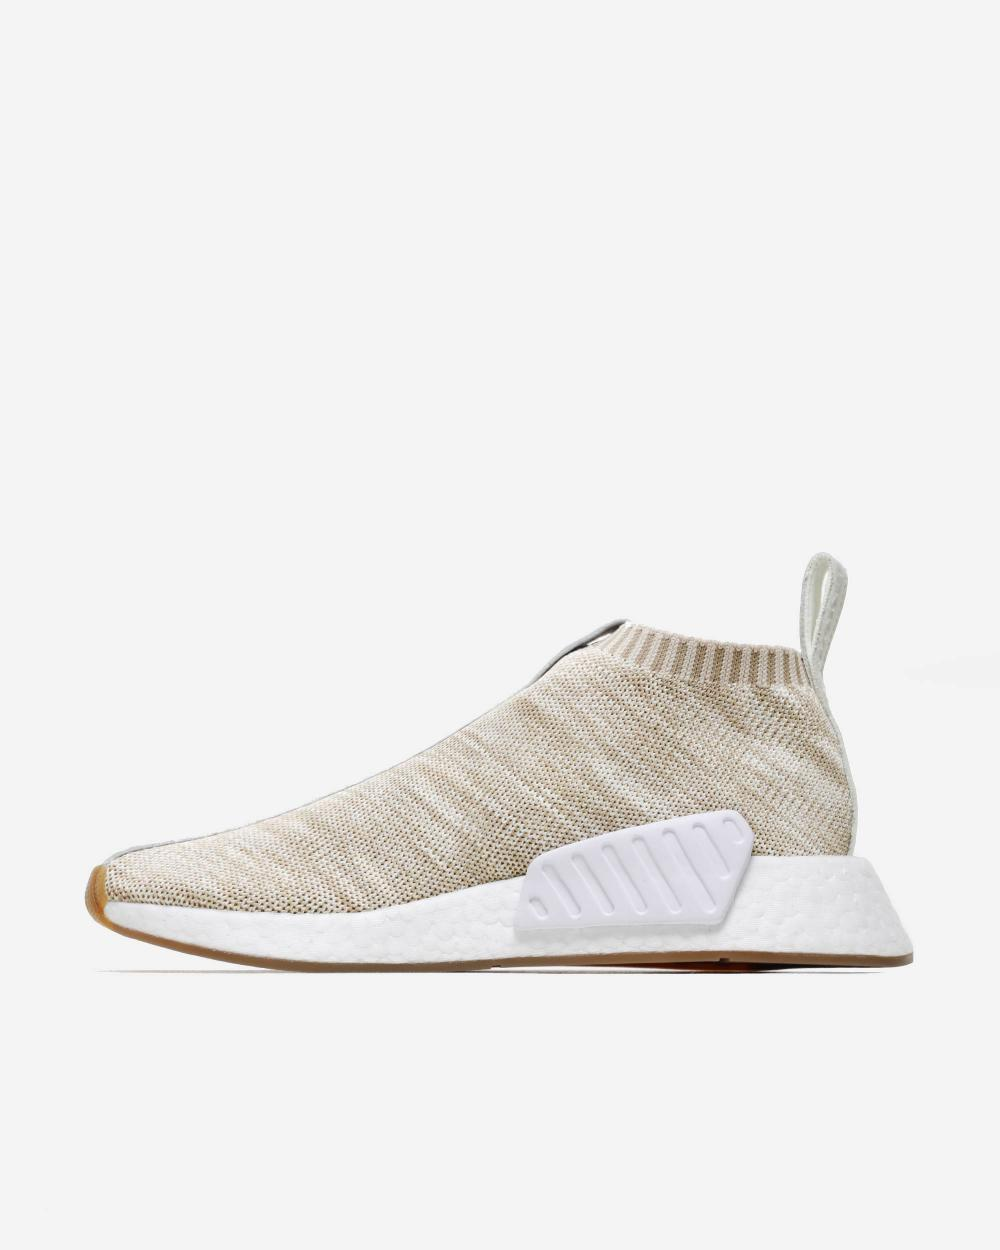 4c282d30b590f adidas NMD City Sock PK White Grey Oxygen Finance